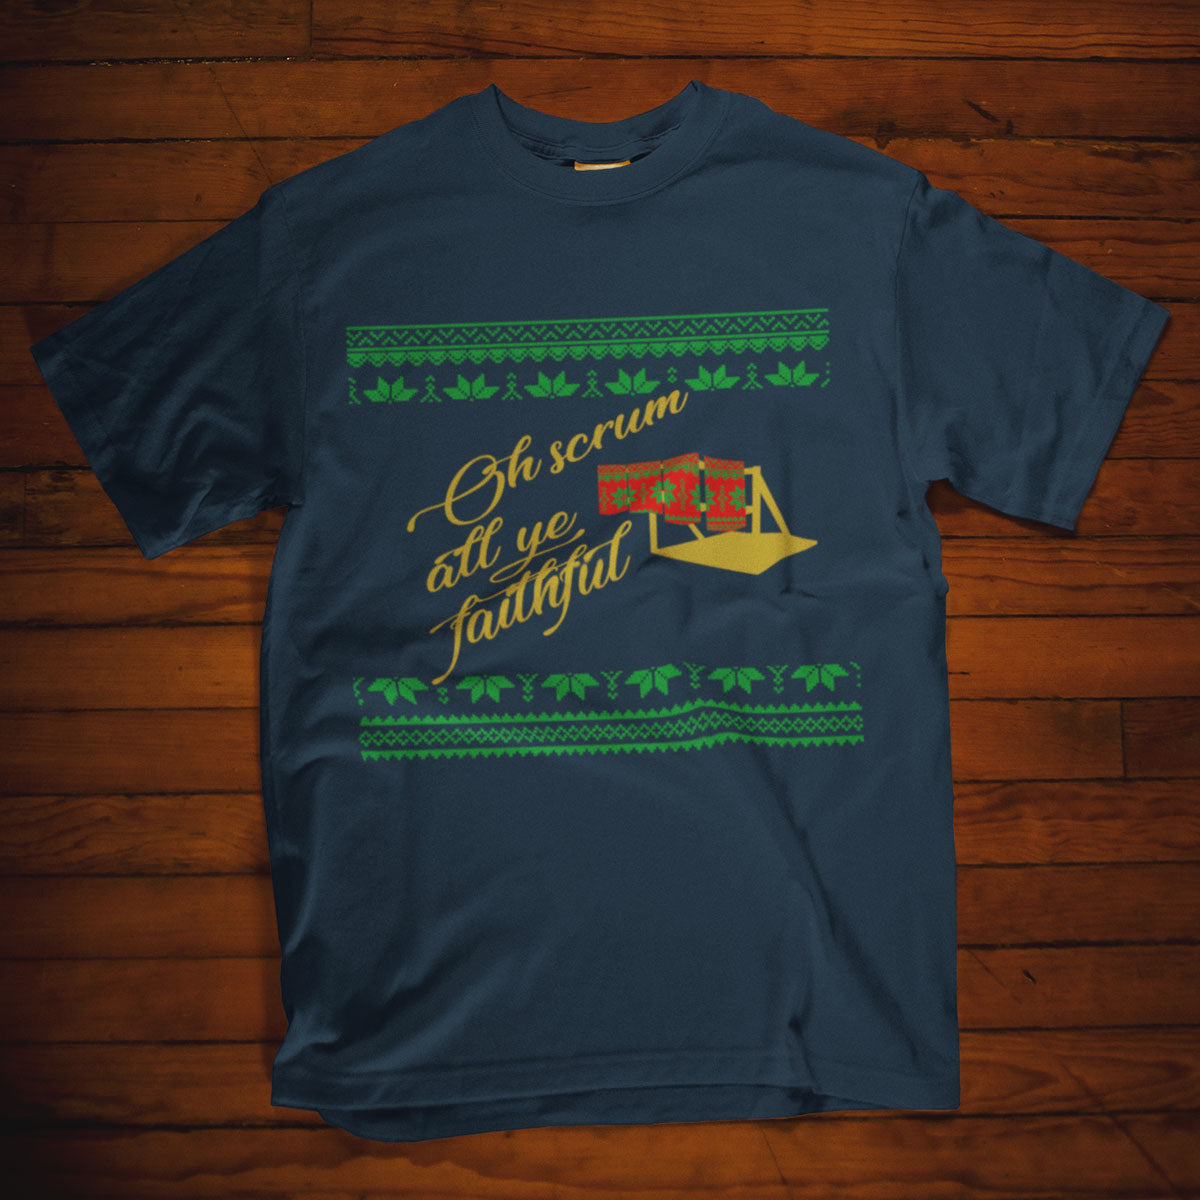 Scrum All Ye Faithful Rugby Christmas Tee - First XV rugbystuff.com